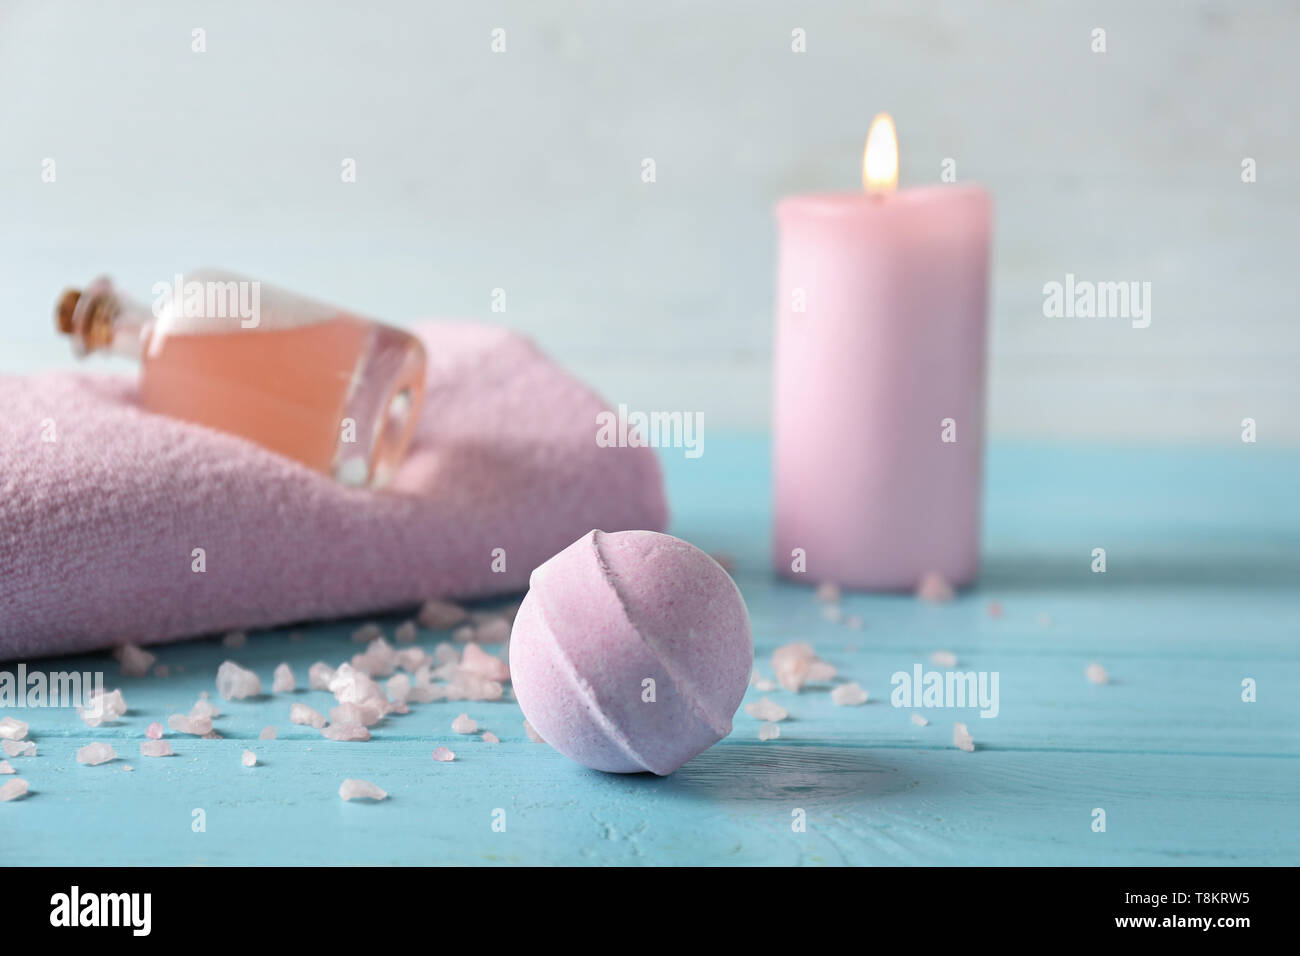 Spa composition with bath bomb on color table - Stock Image